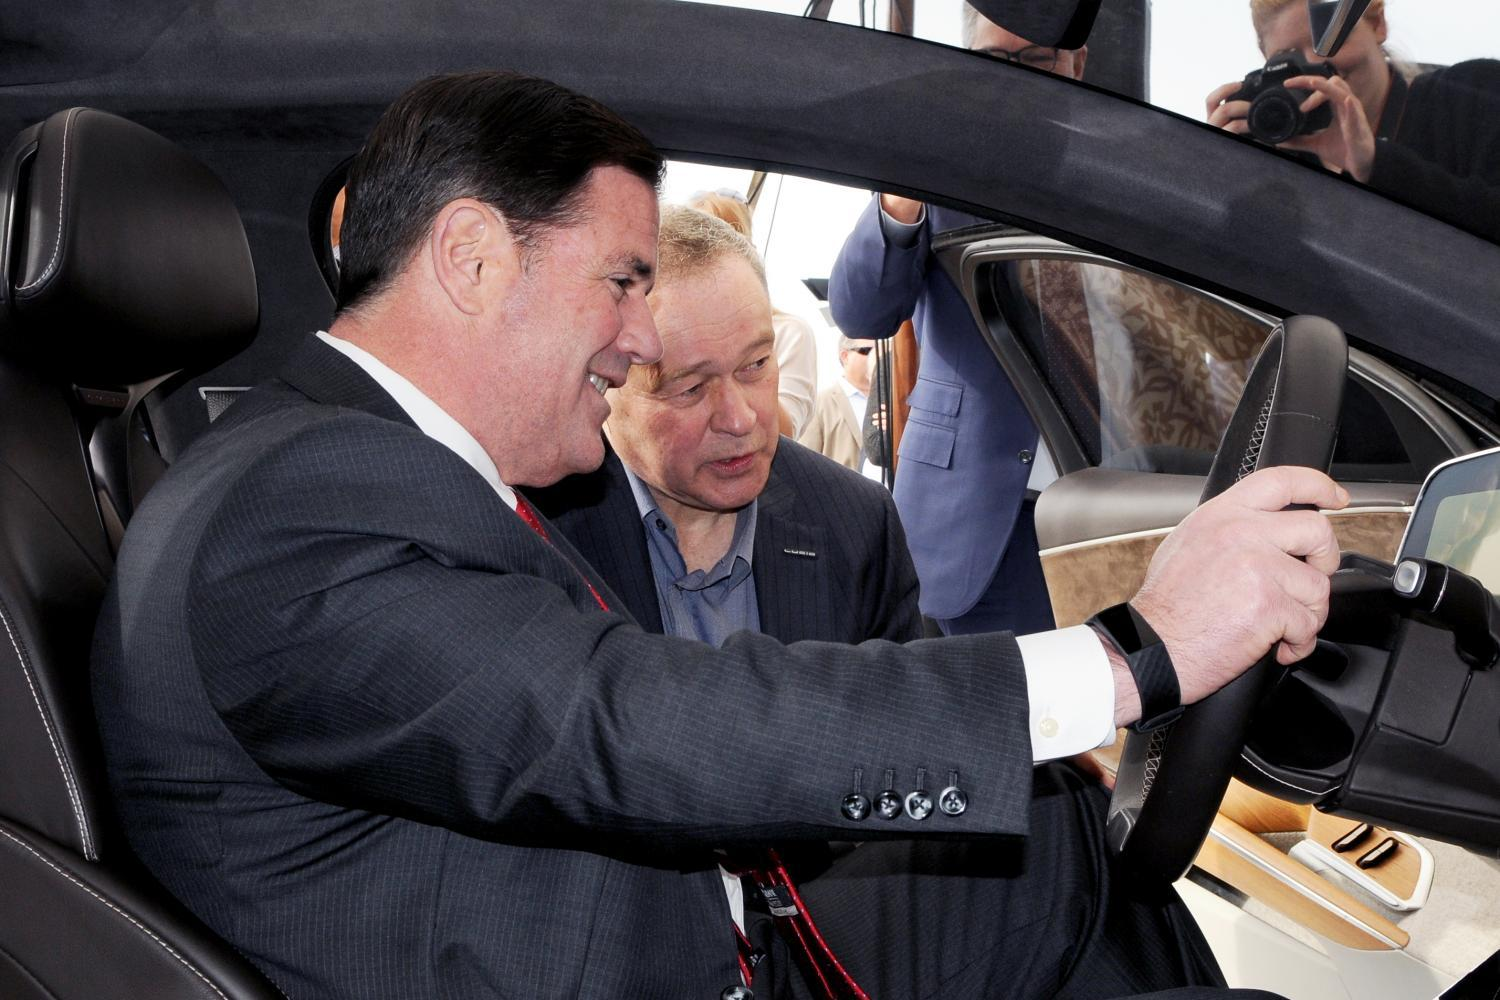 ducey in a lucid motor vehicle